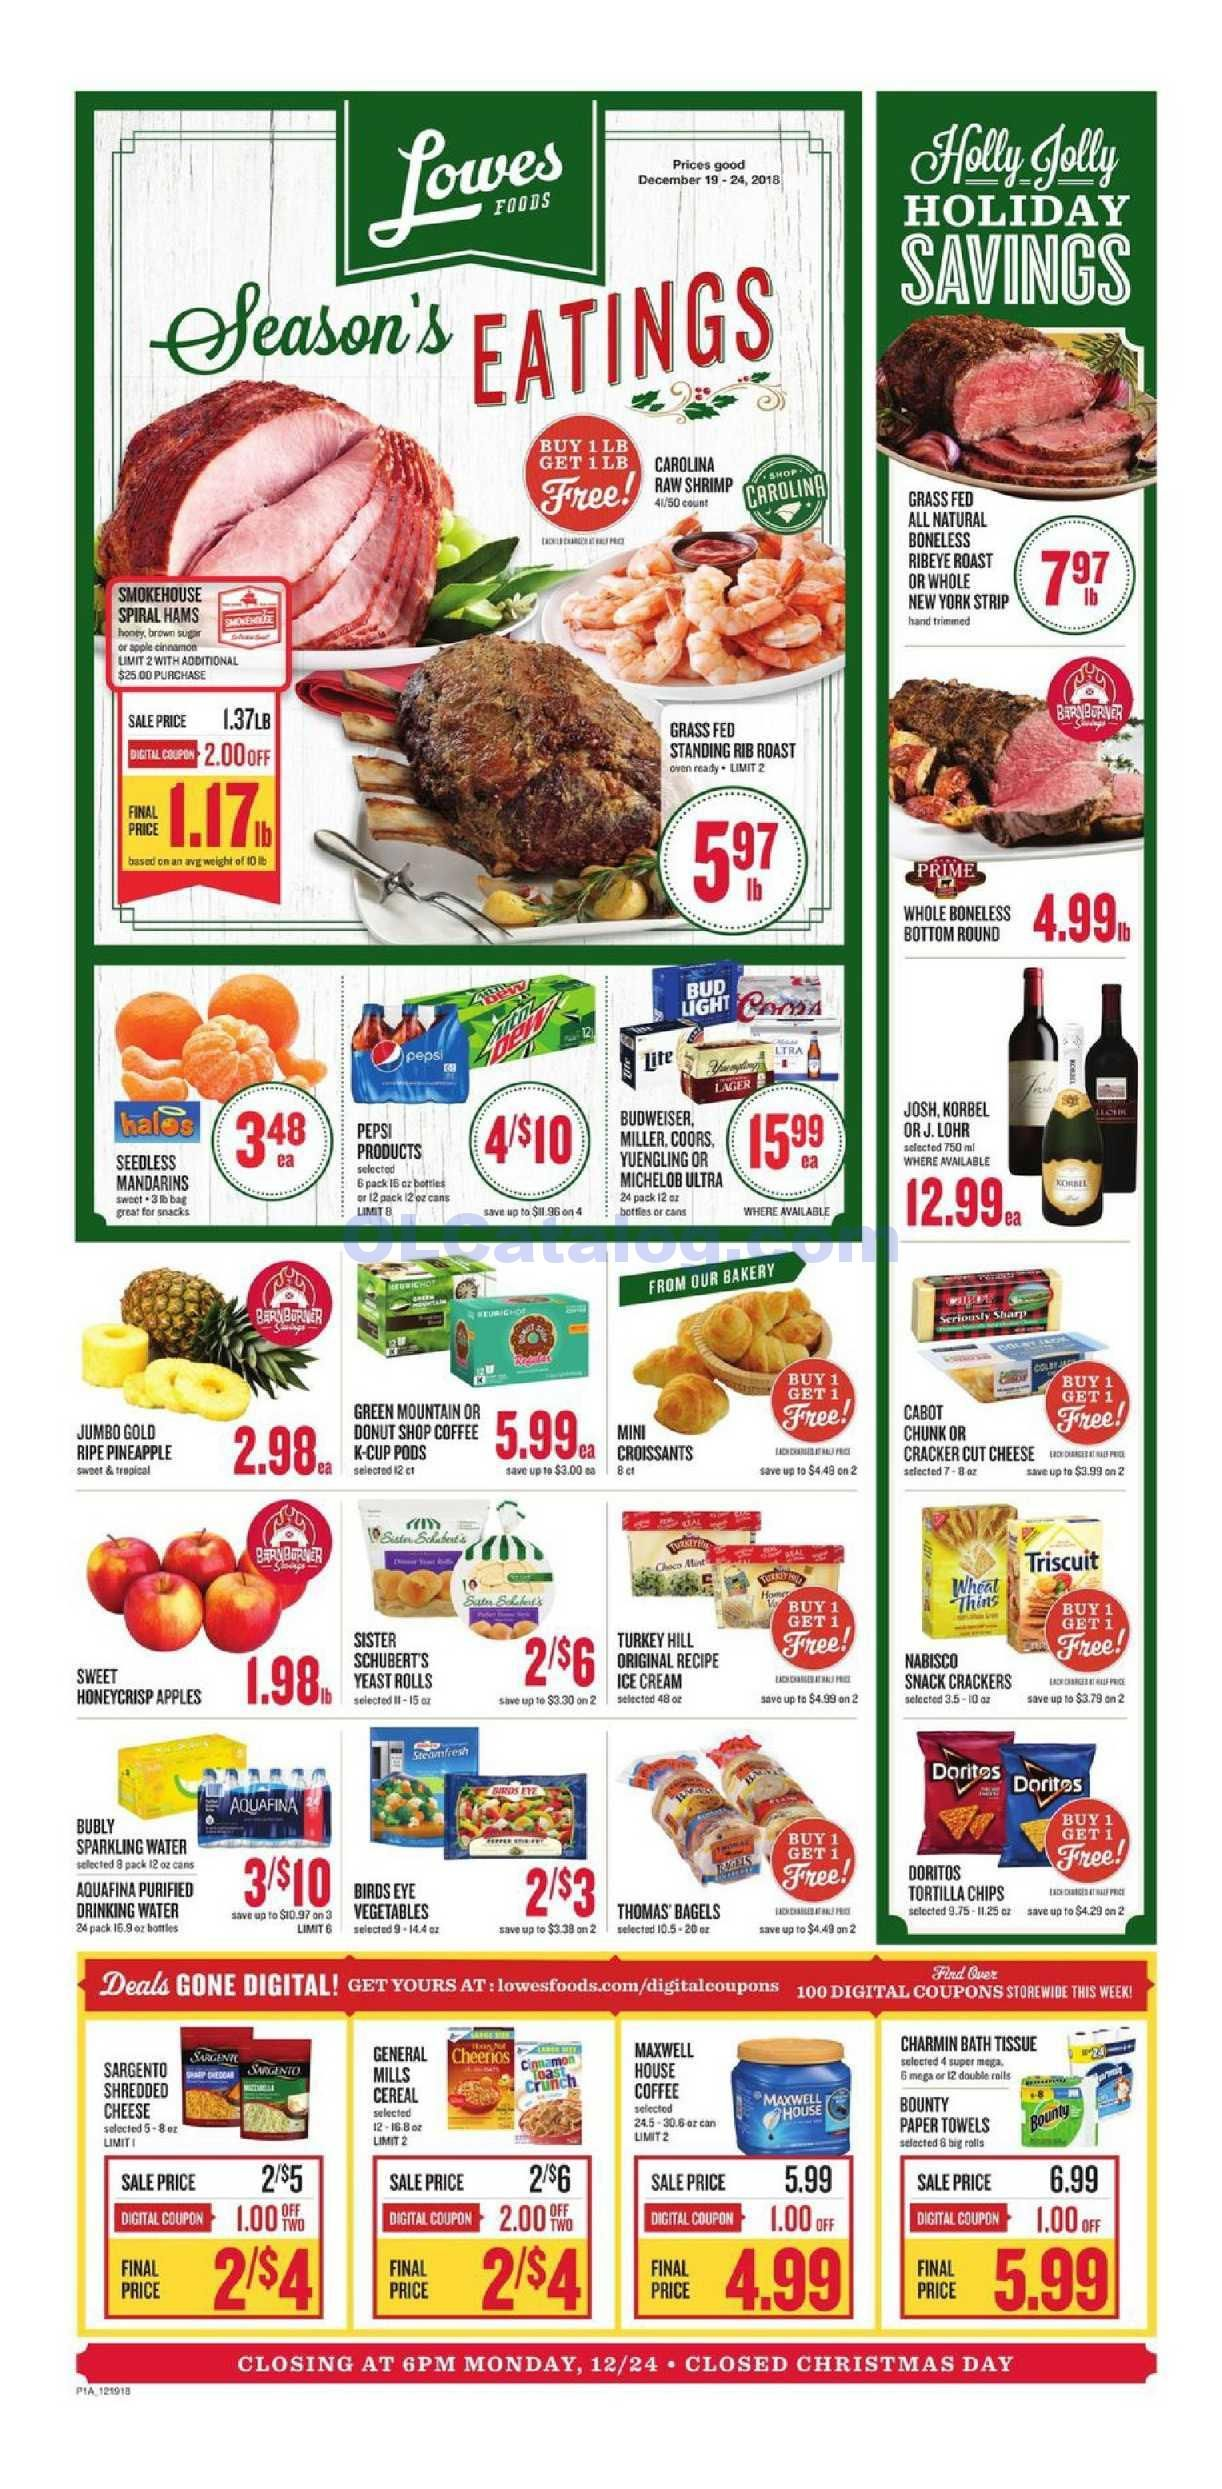 Lowes foods Weekly Ad December 19 25, 2018. View the